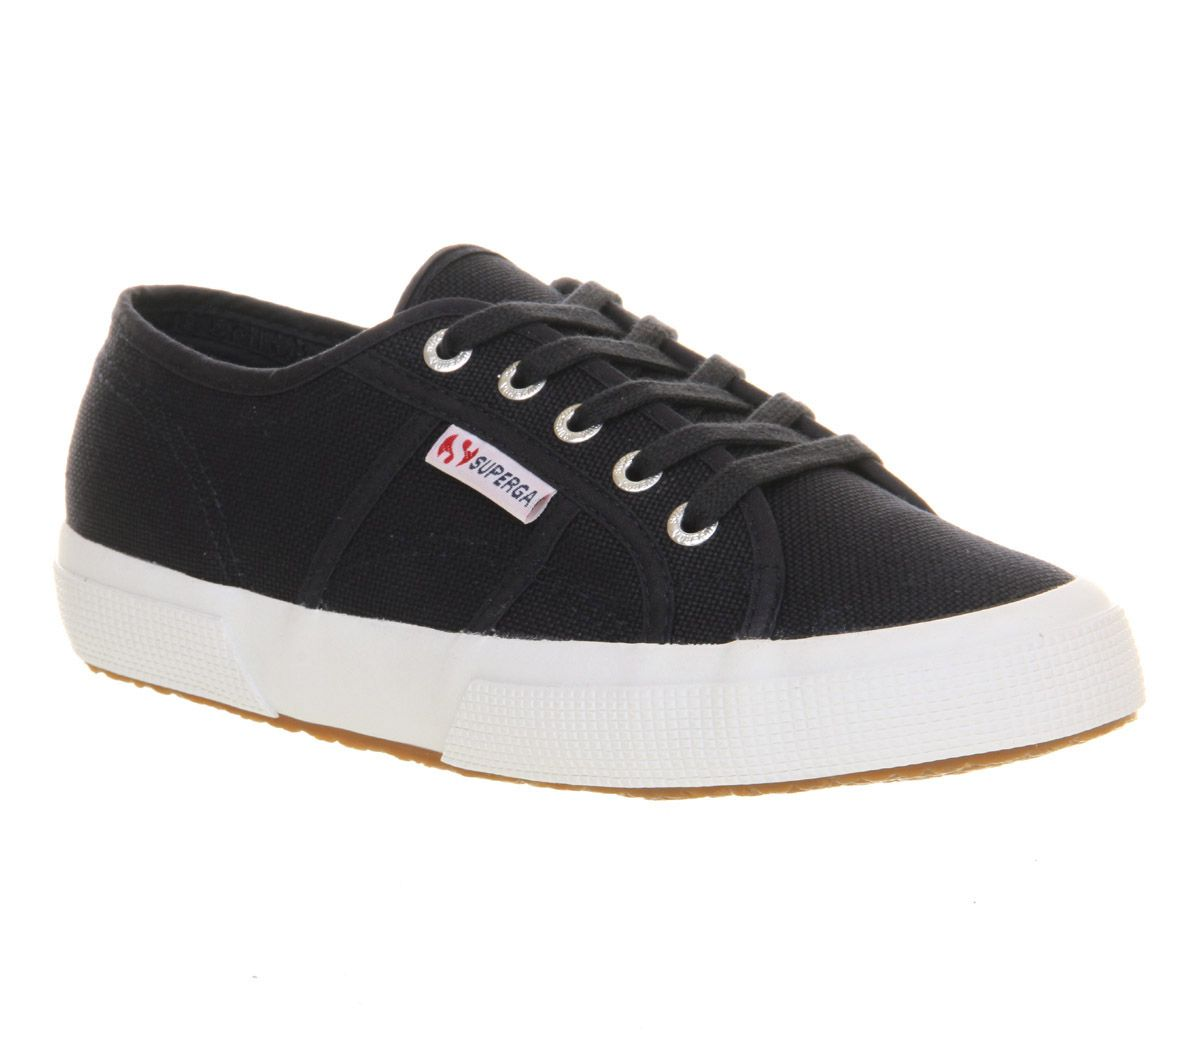 7eaea8bc4880 Superga 2750 Trainers Navy White - Office Girl